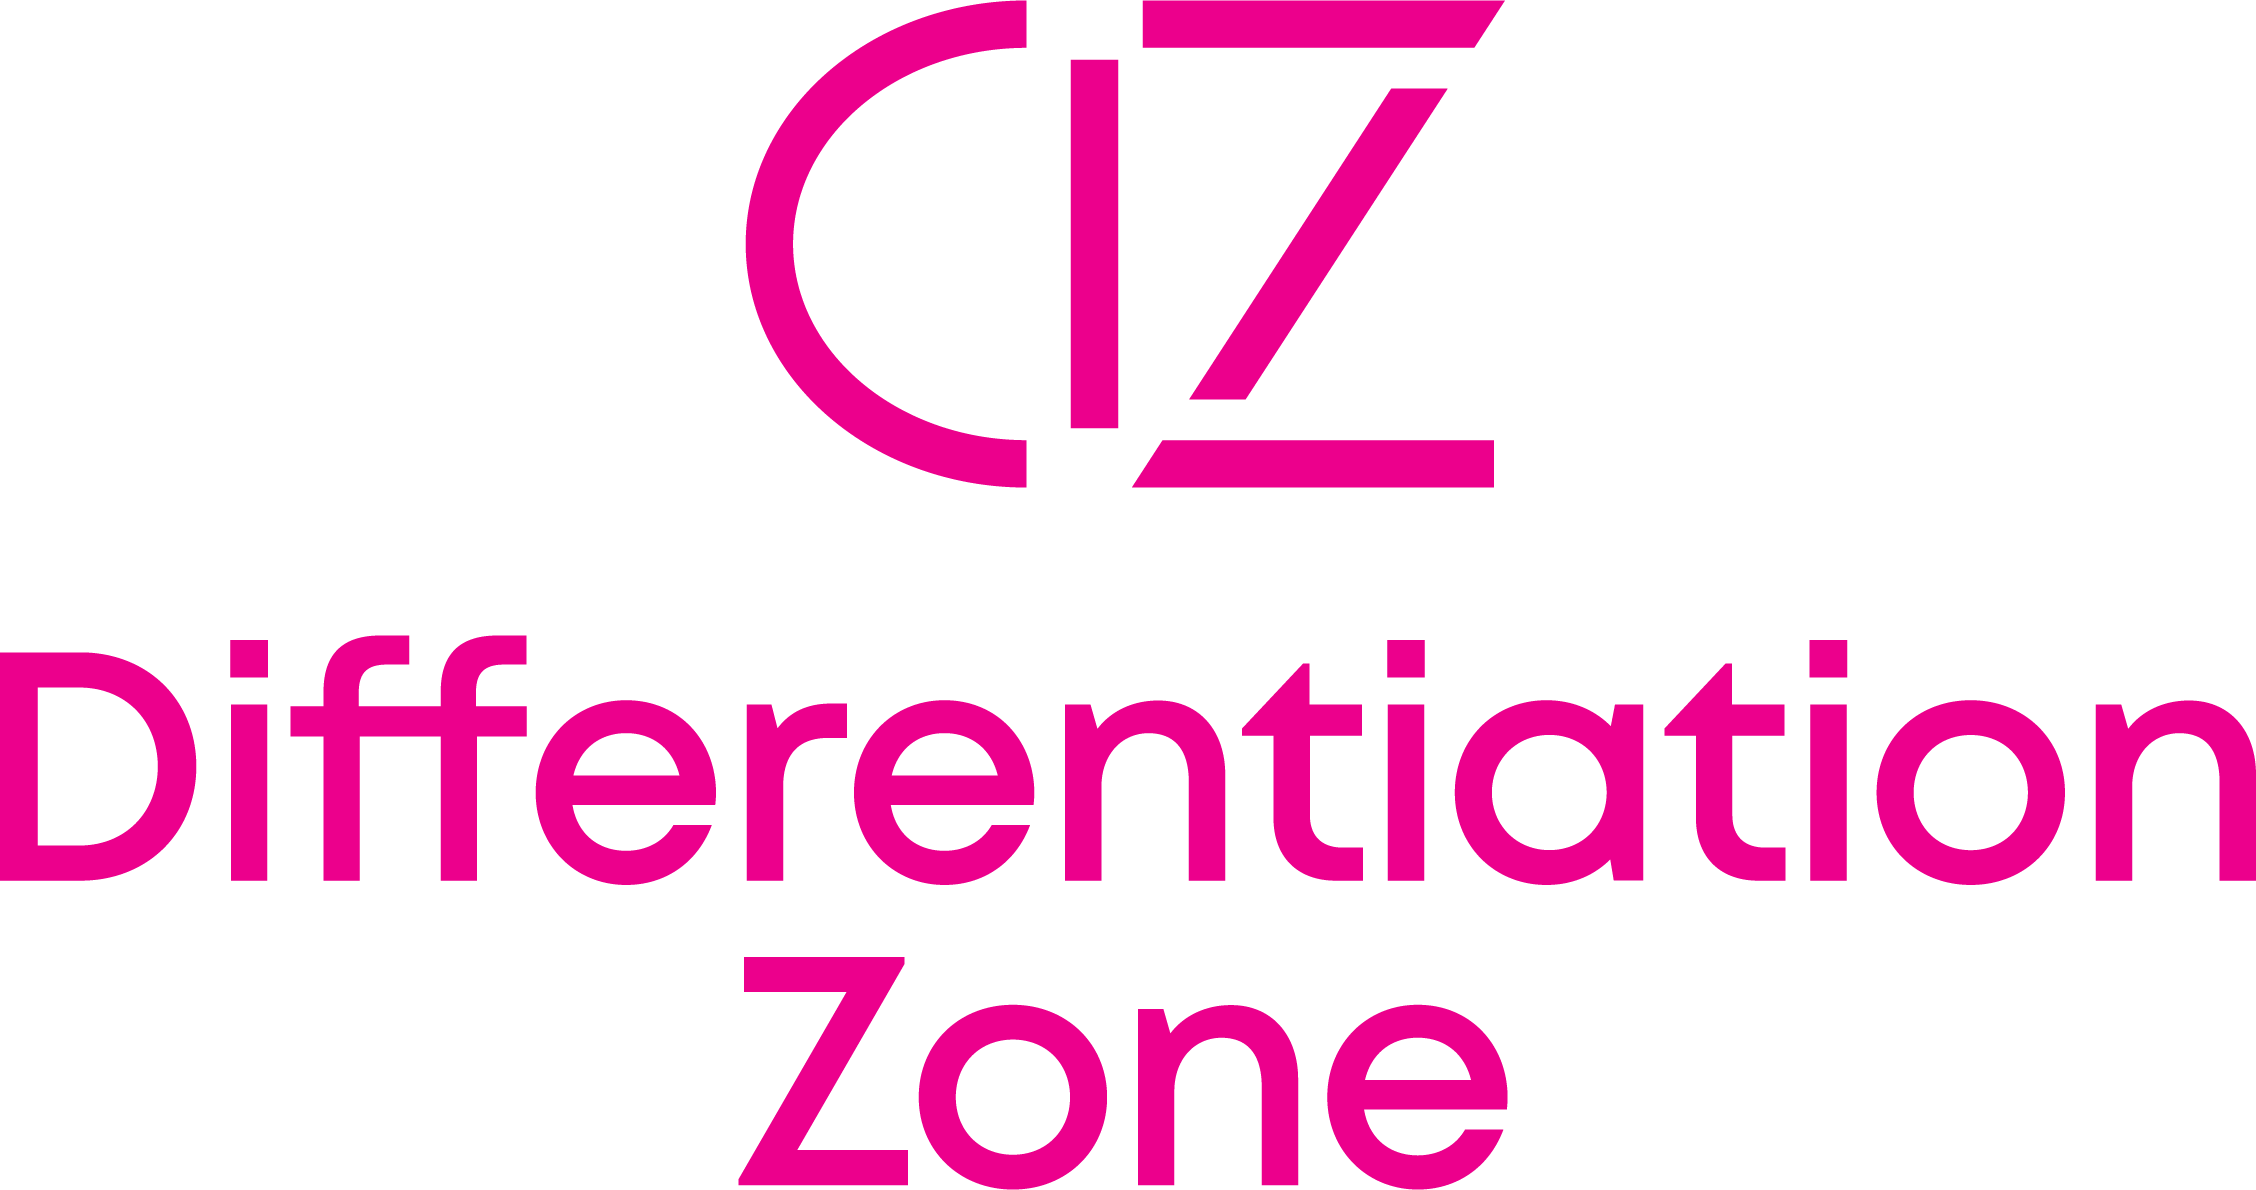 Differentiation Zone